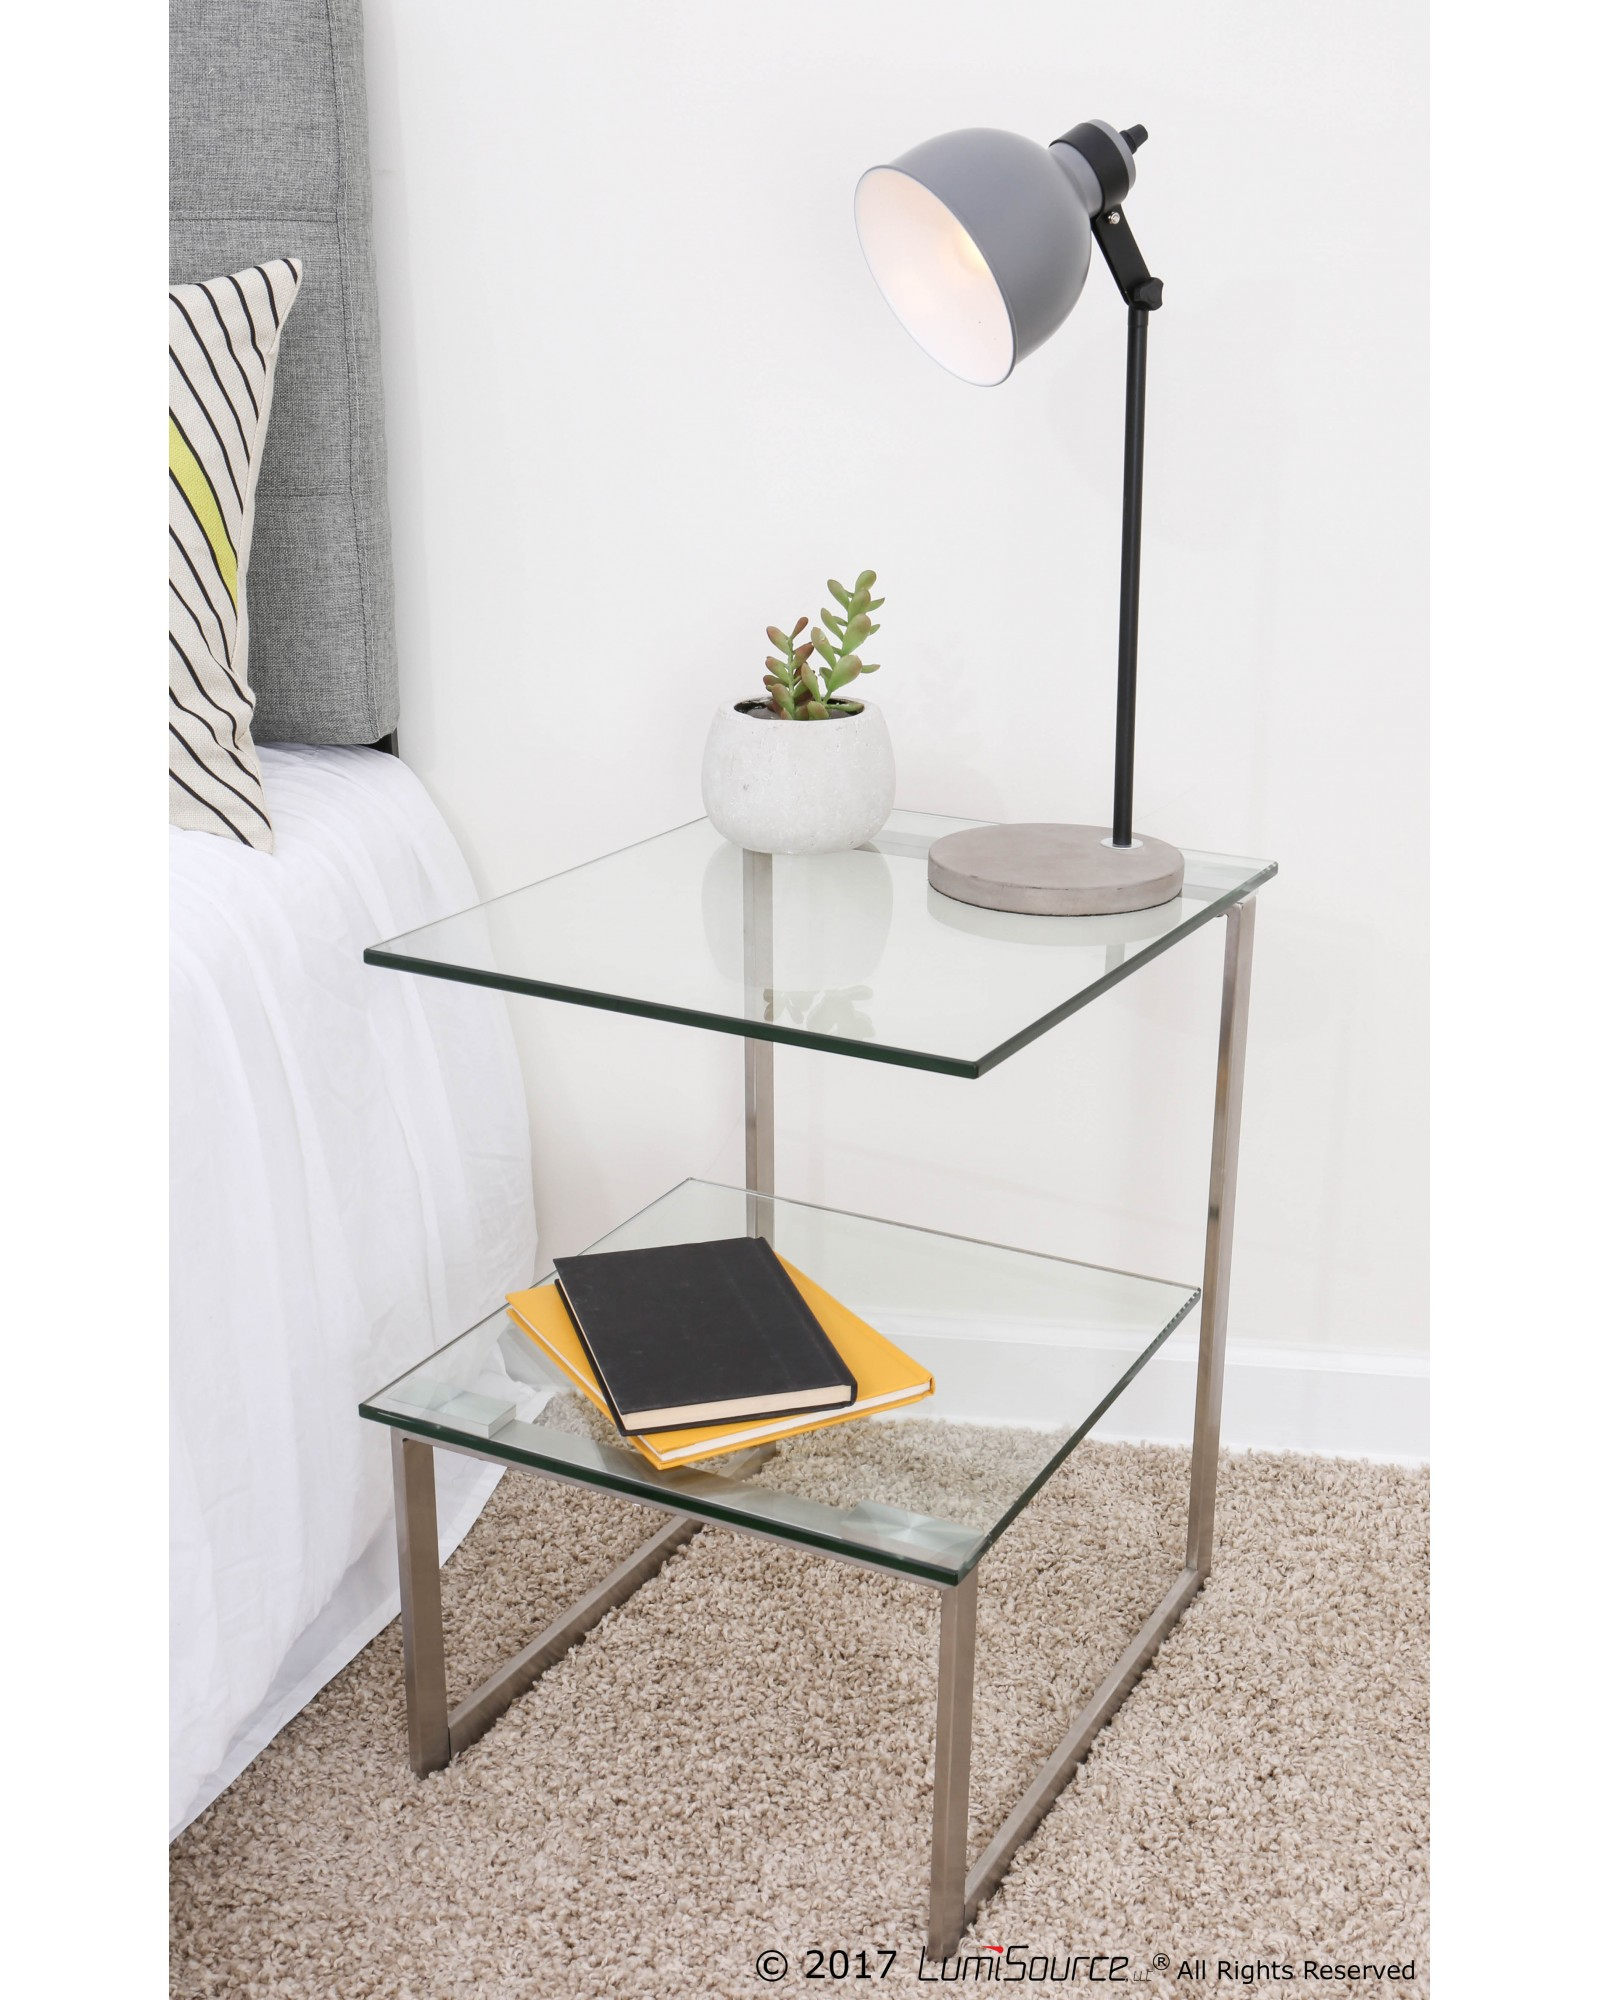 6G Contemporary End Table in Stainless Steel with Clear Glass